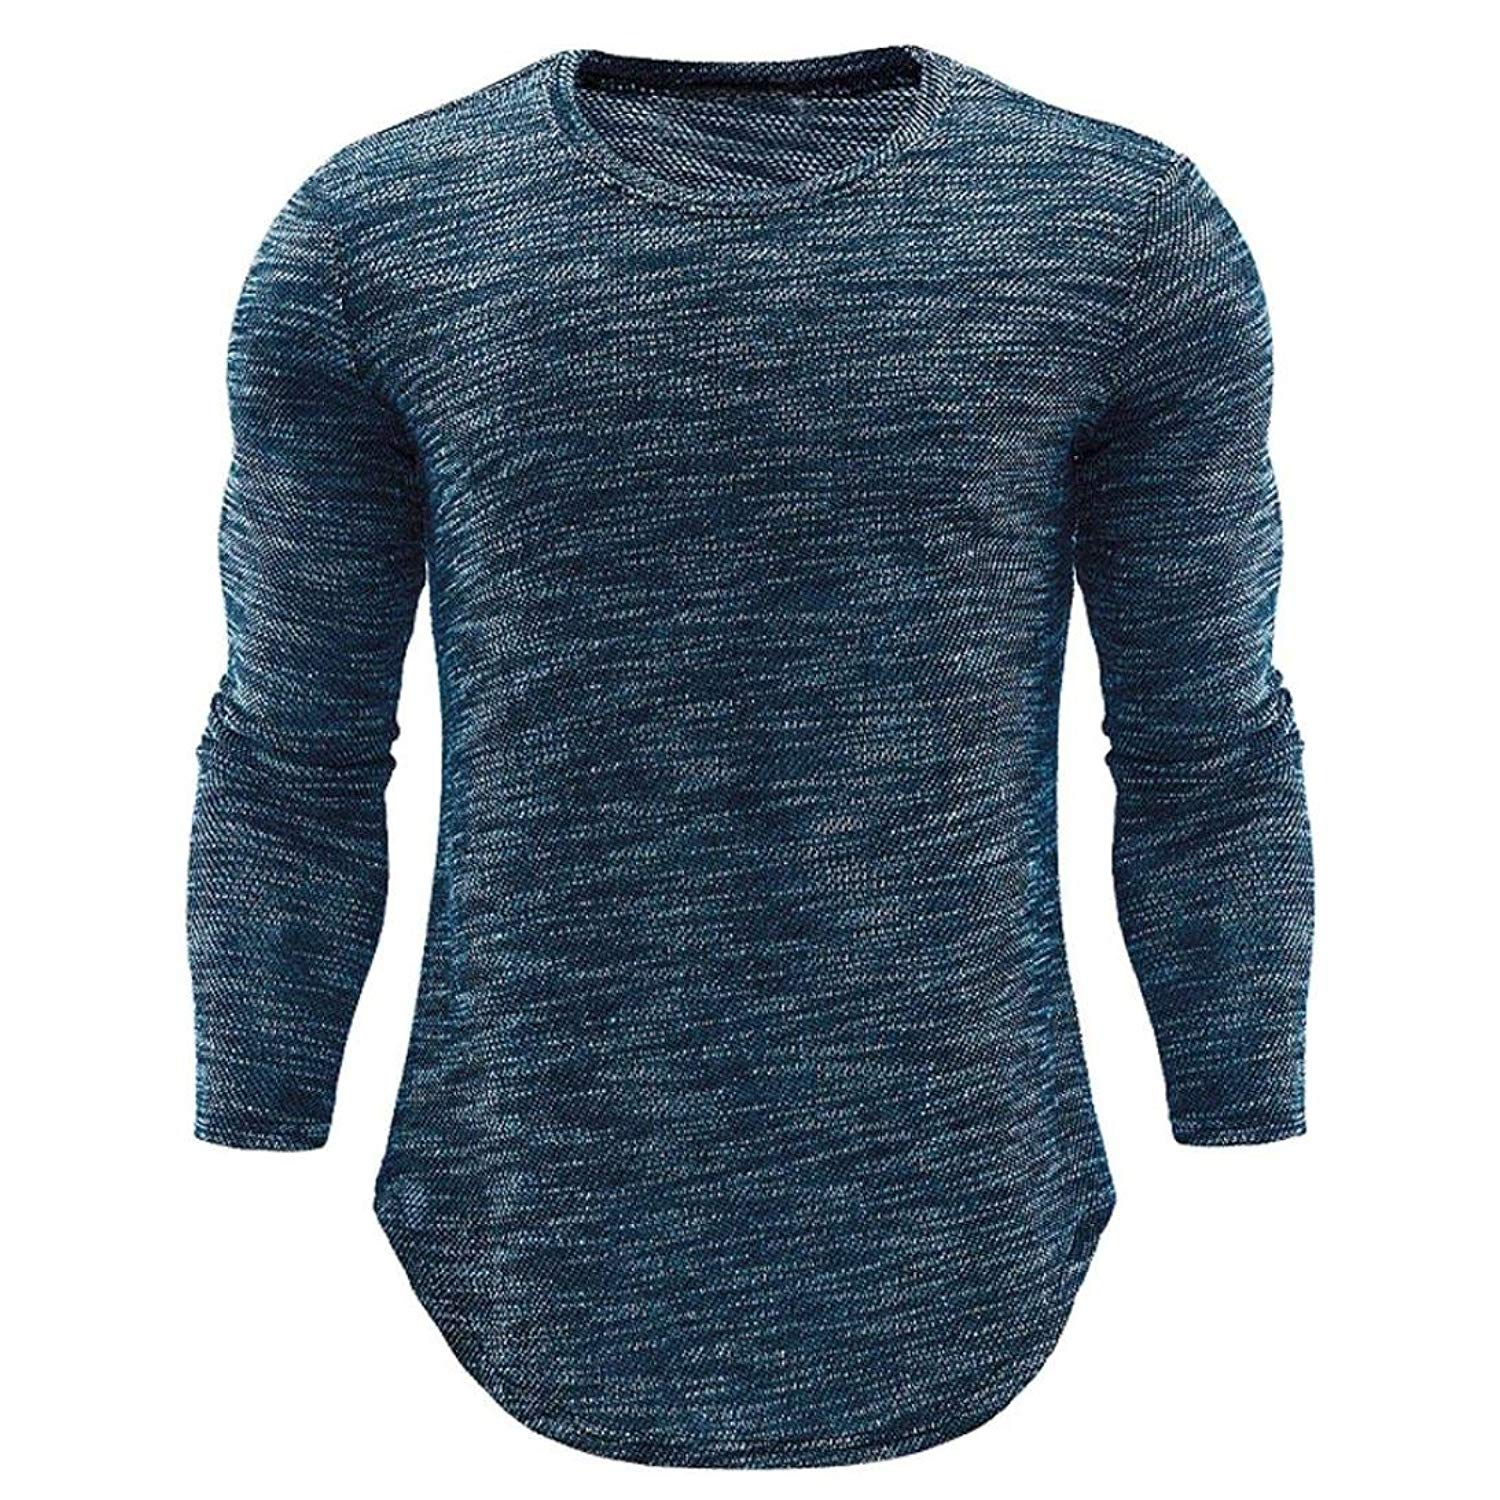 8fefcaba Get Quotations · PHOTNO Mens T Shirts,Slim Fit Long Sleeve Plain Cotton  Pullover Tops Blouse Shirts for